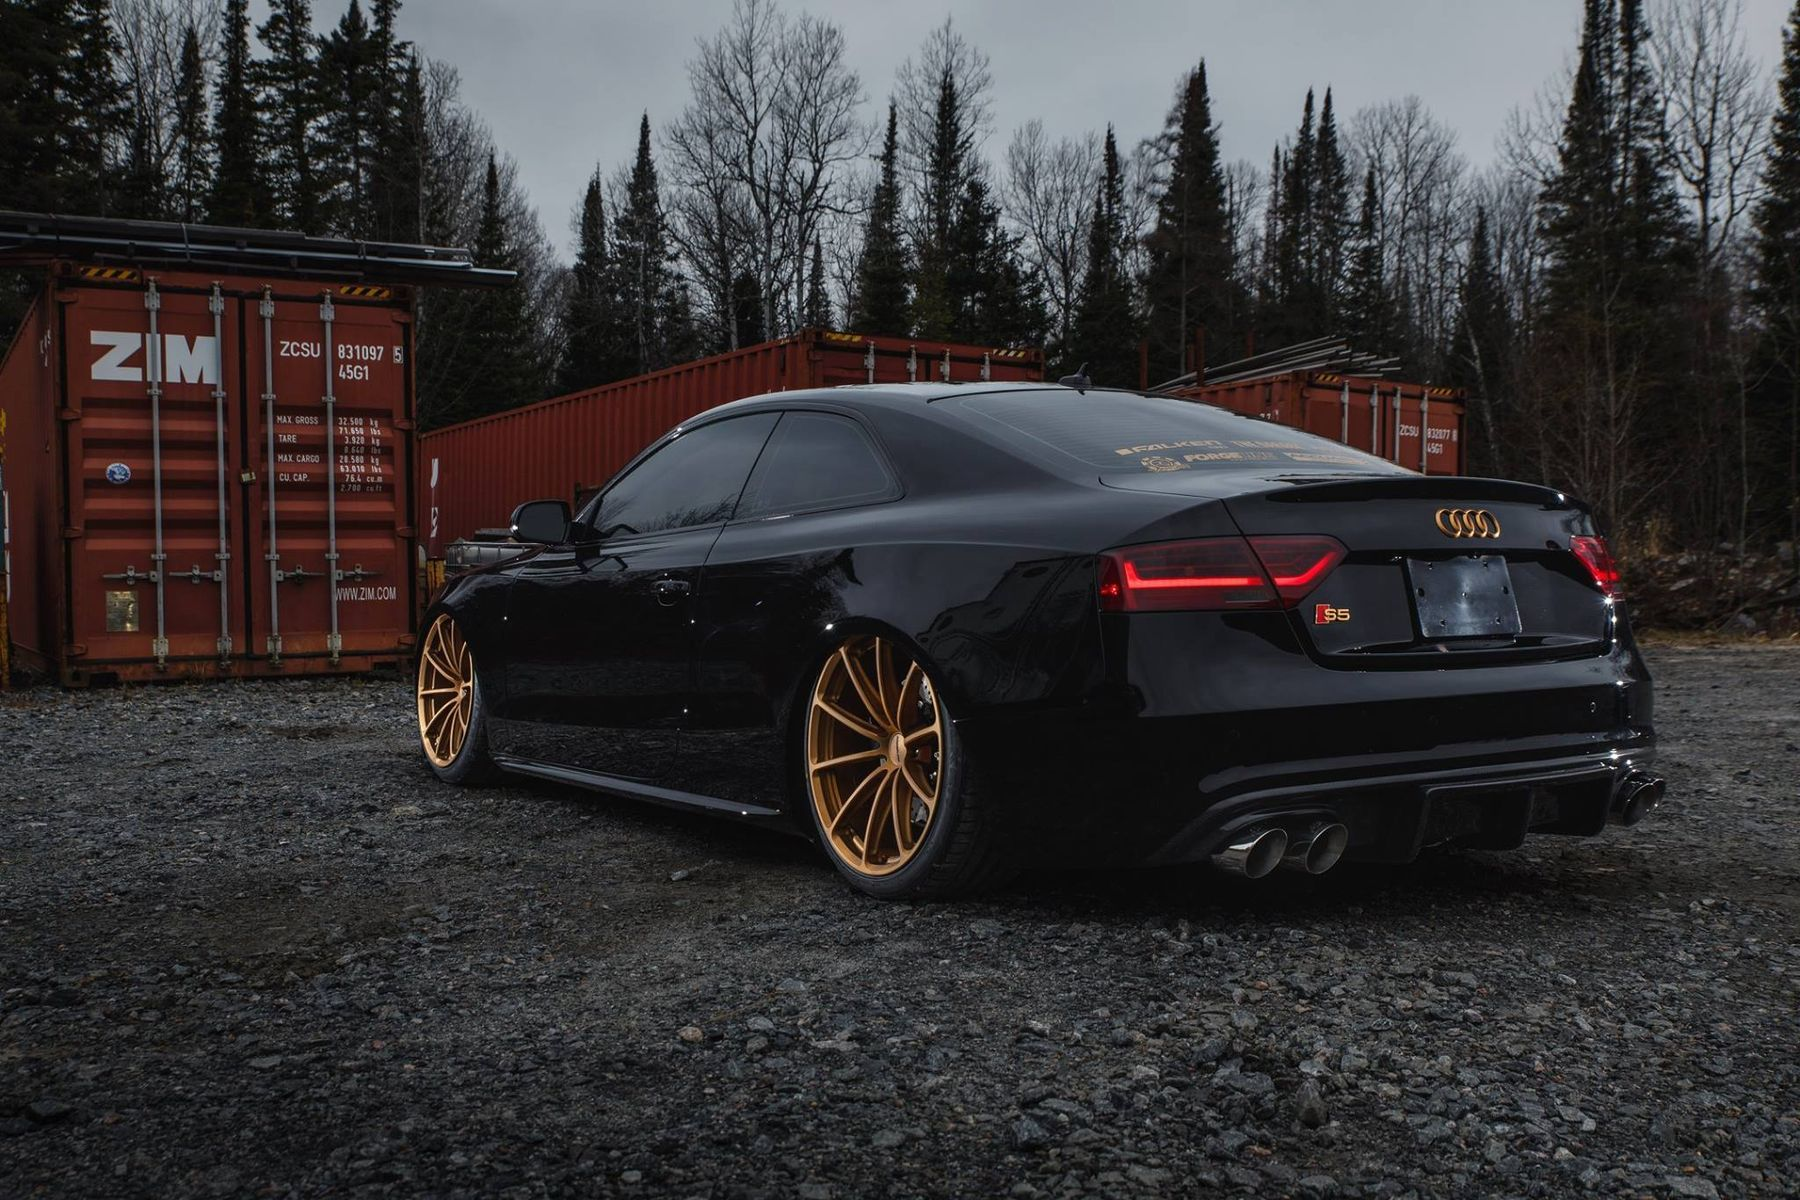 2016 Audi S5 | Prostate Cancer Canada's Bagged Audi S5 Coupe on Forgeline One Piece Forged Monoblock GT1 5-Lug Wheels